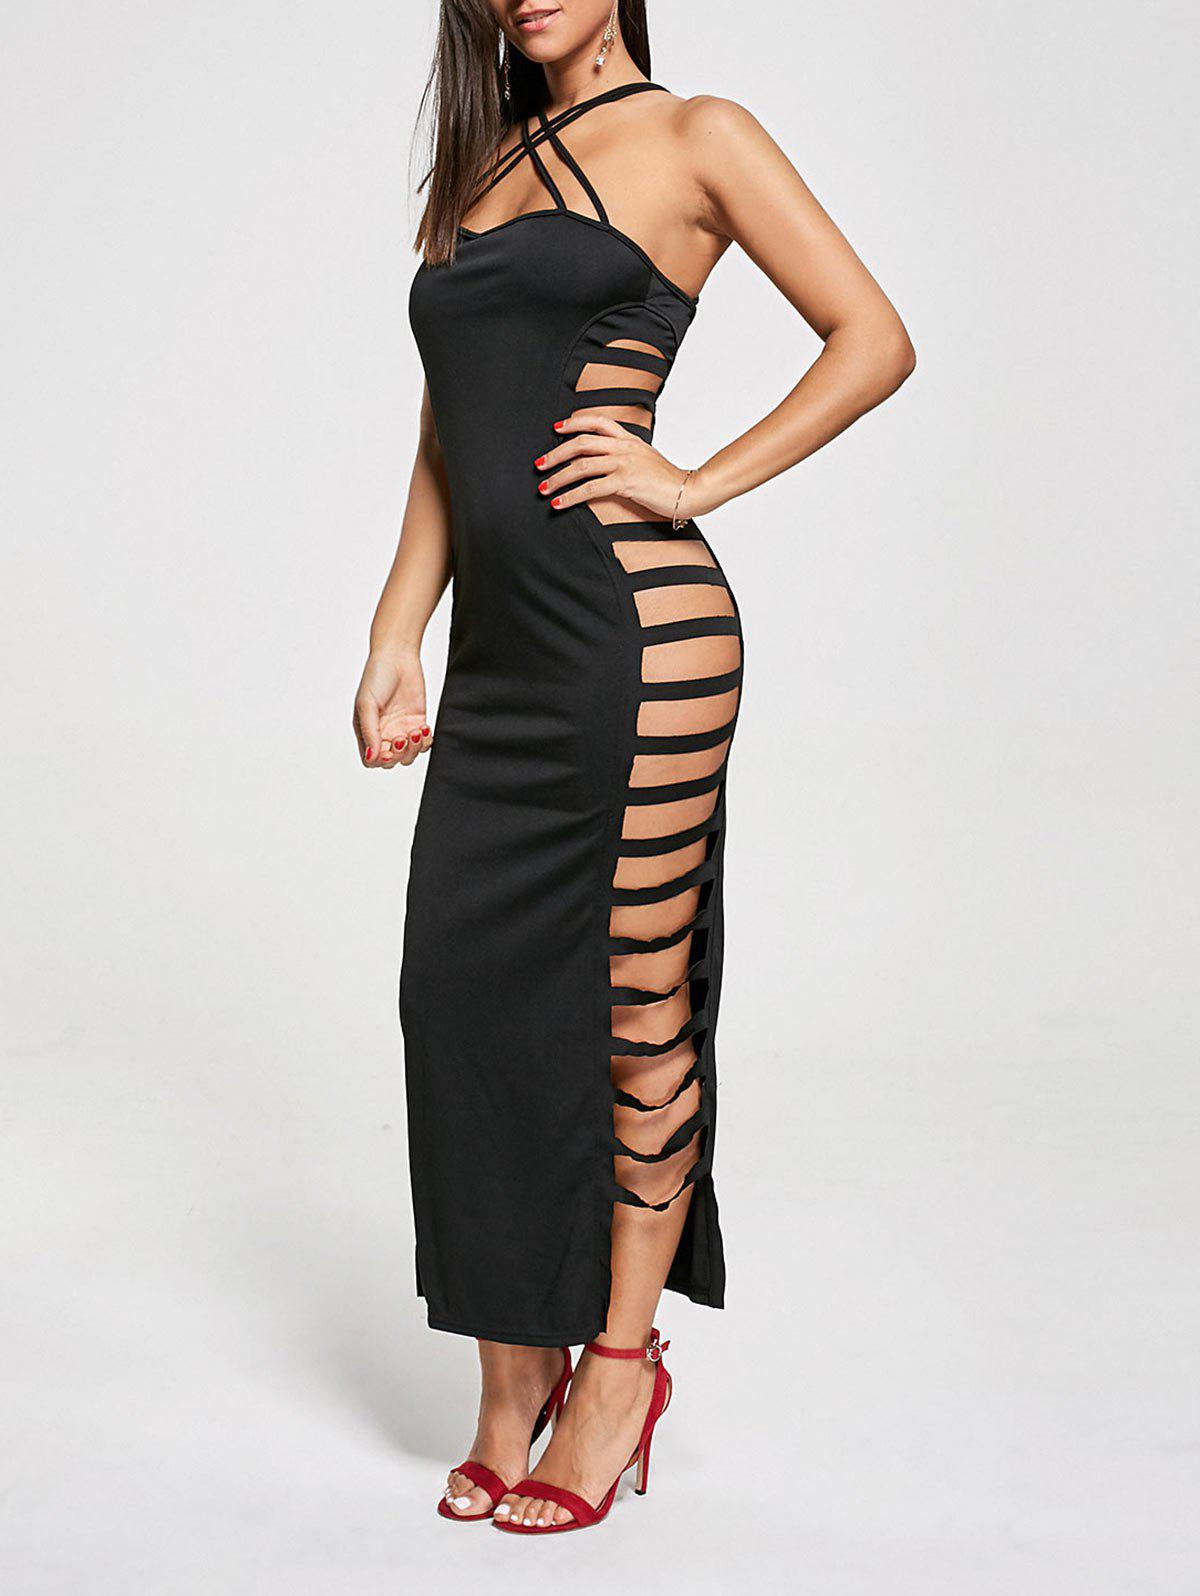 Sexy Cut Out Criss Cross Club Dress - BLACK L